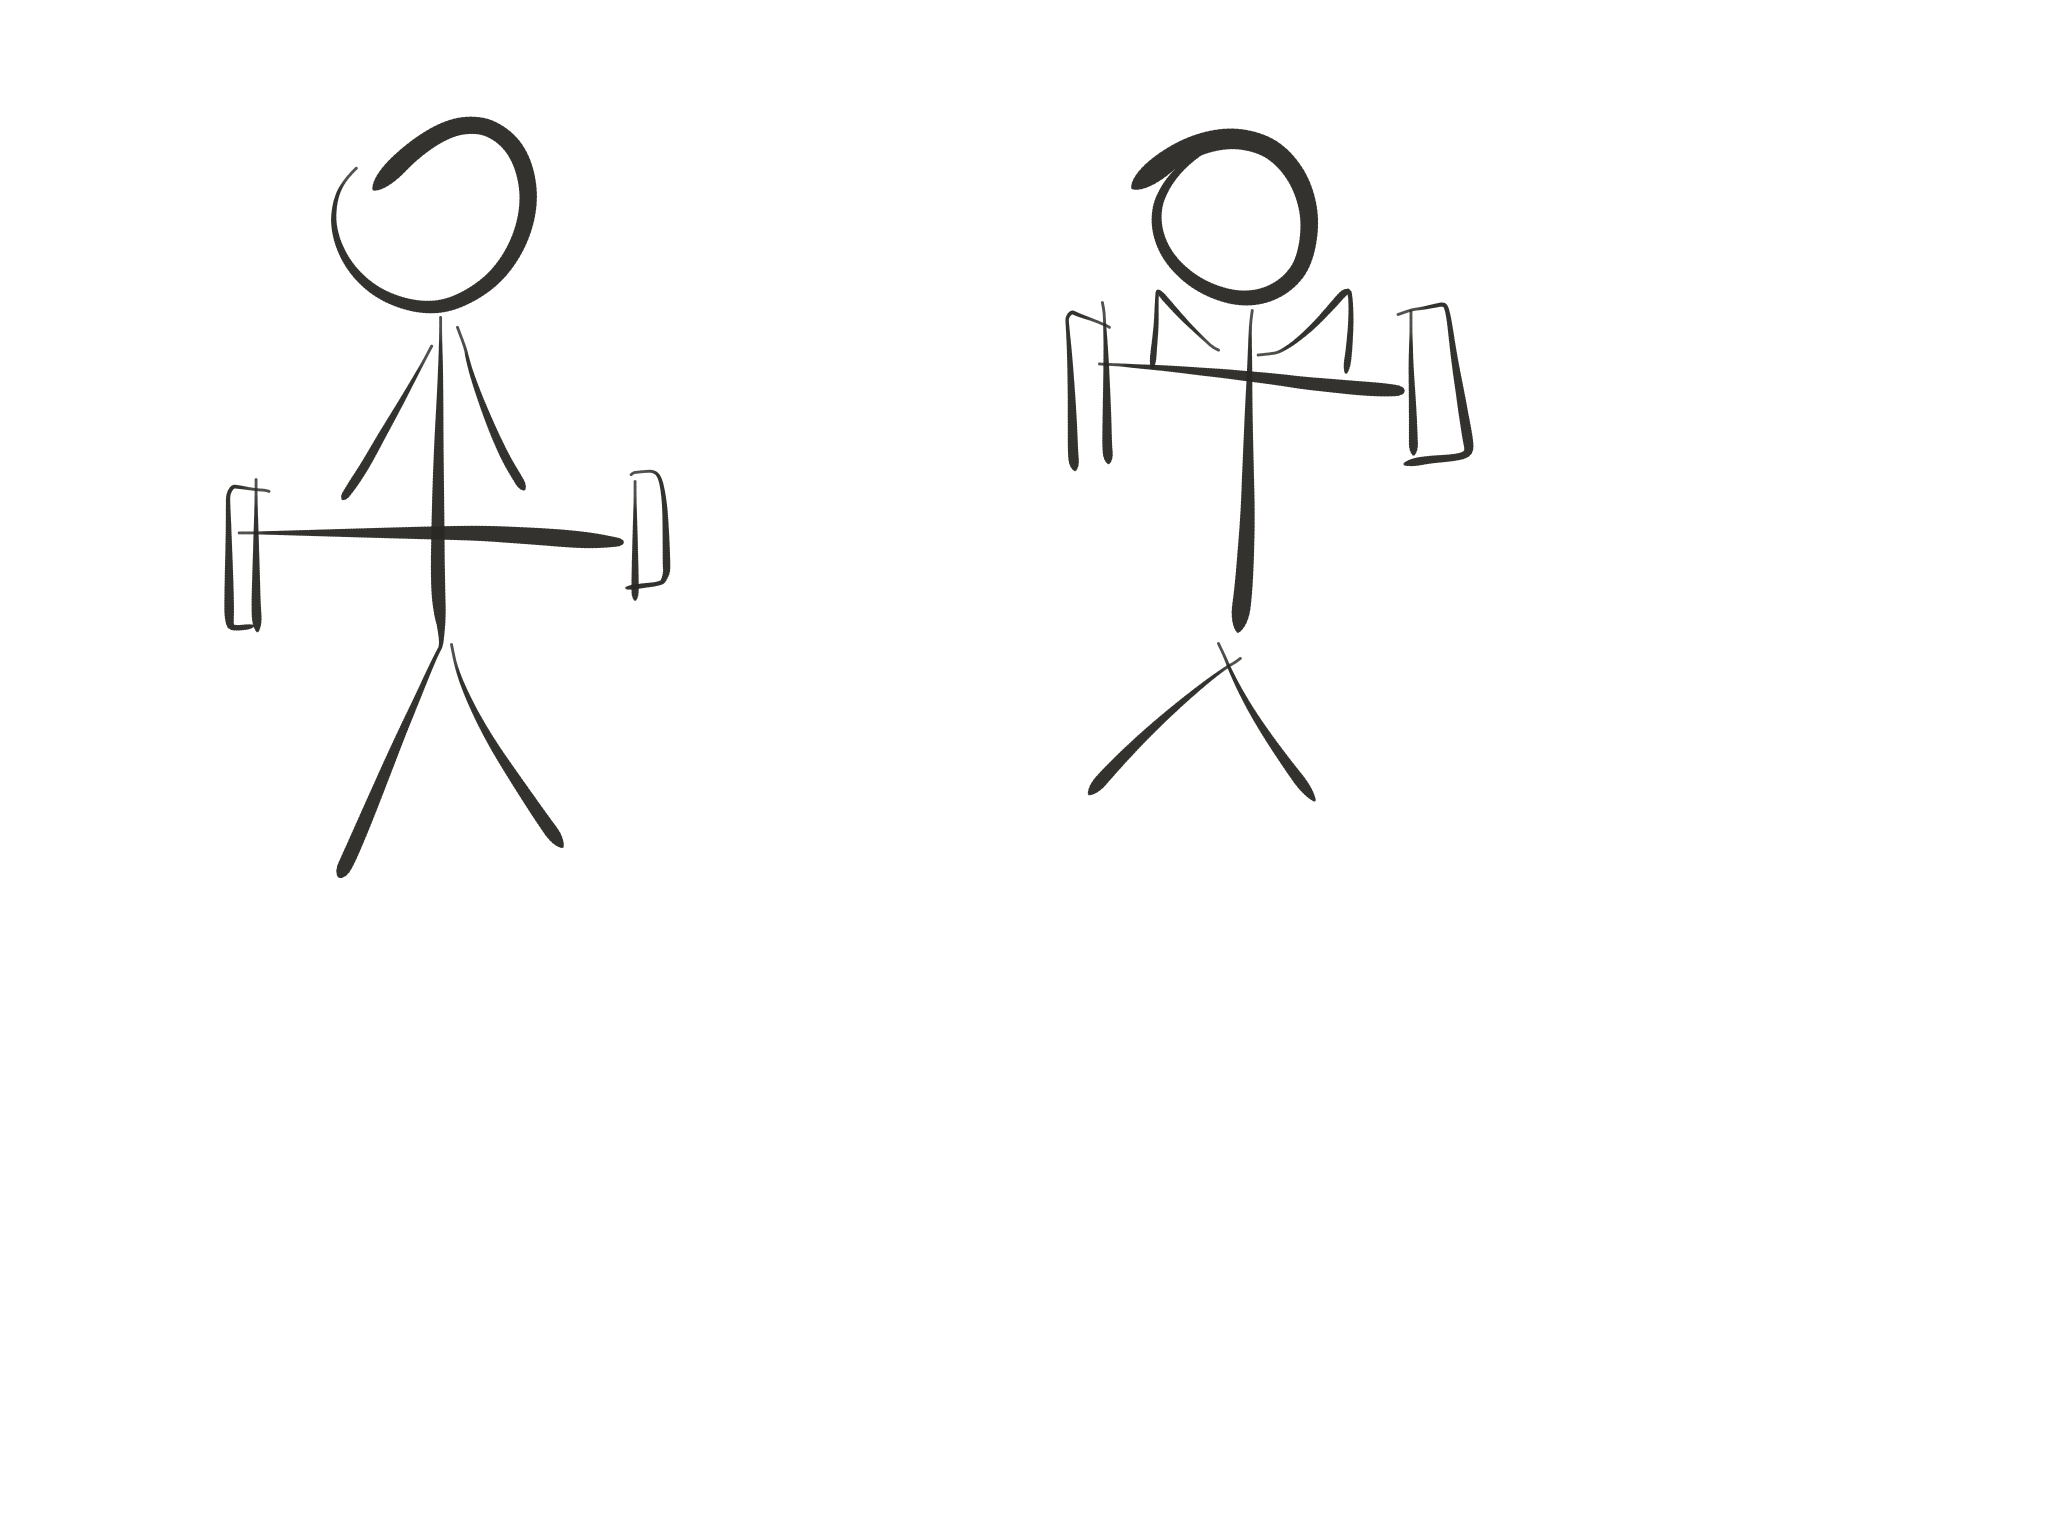 Stick figure diagram, upright row